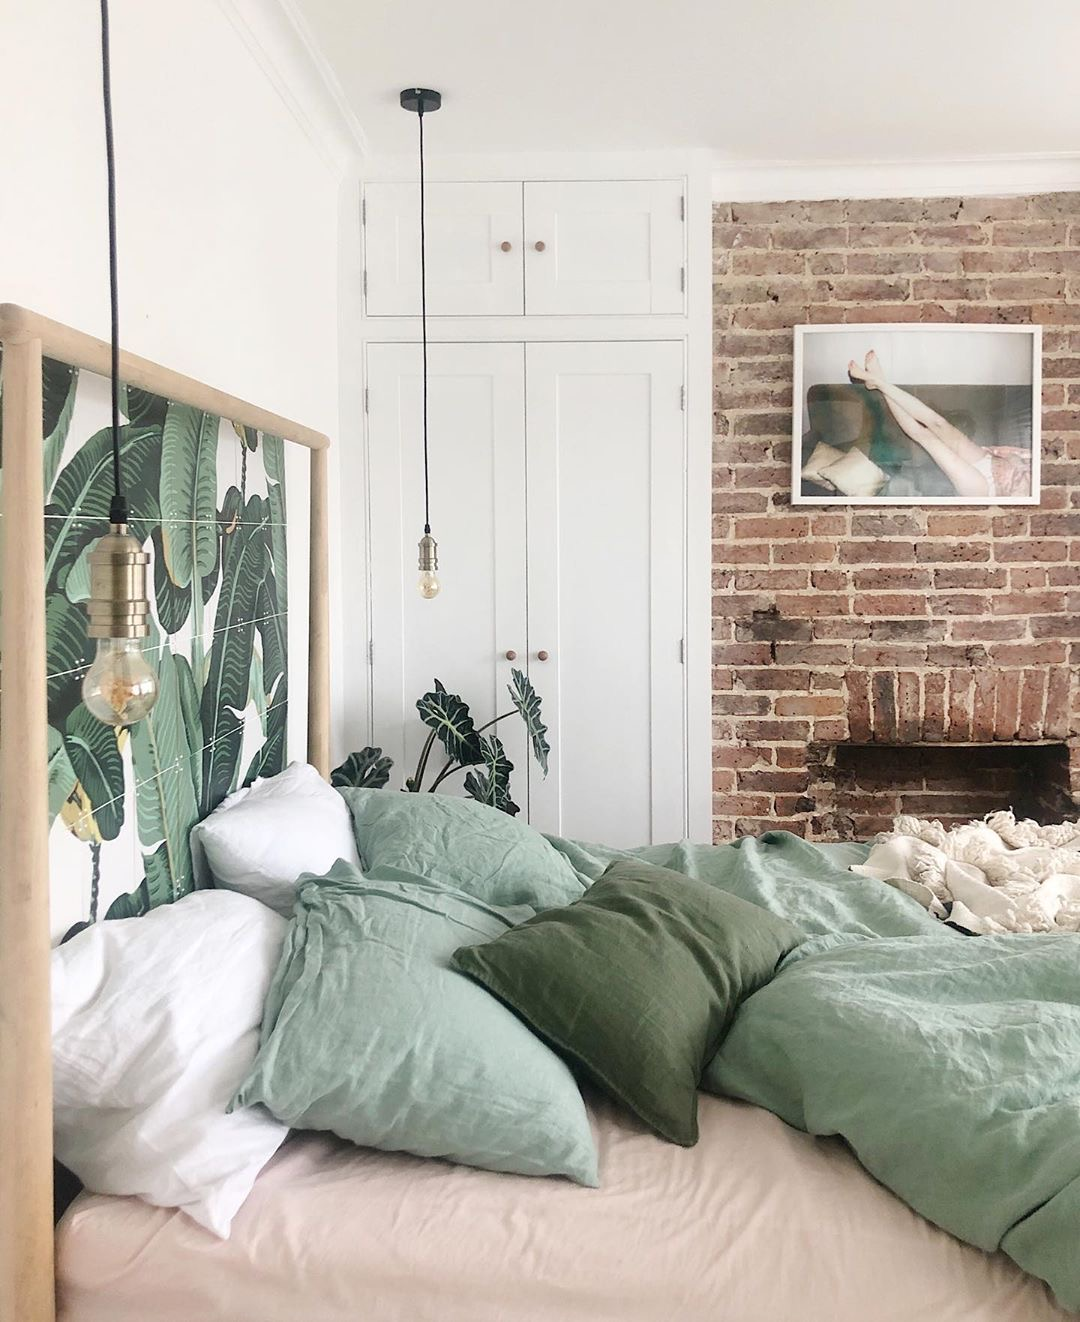 Sleep well in bedlinen from Piglet, shown in @thisismyhomestyle.